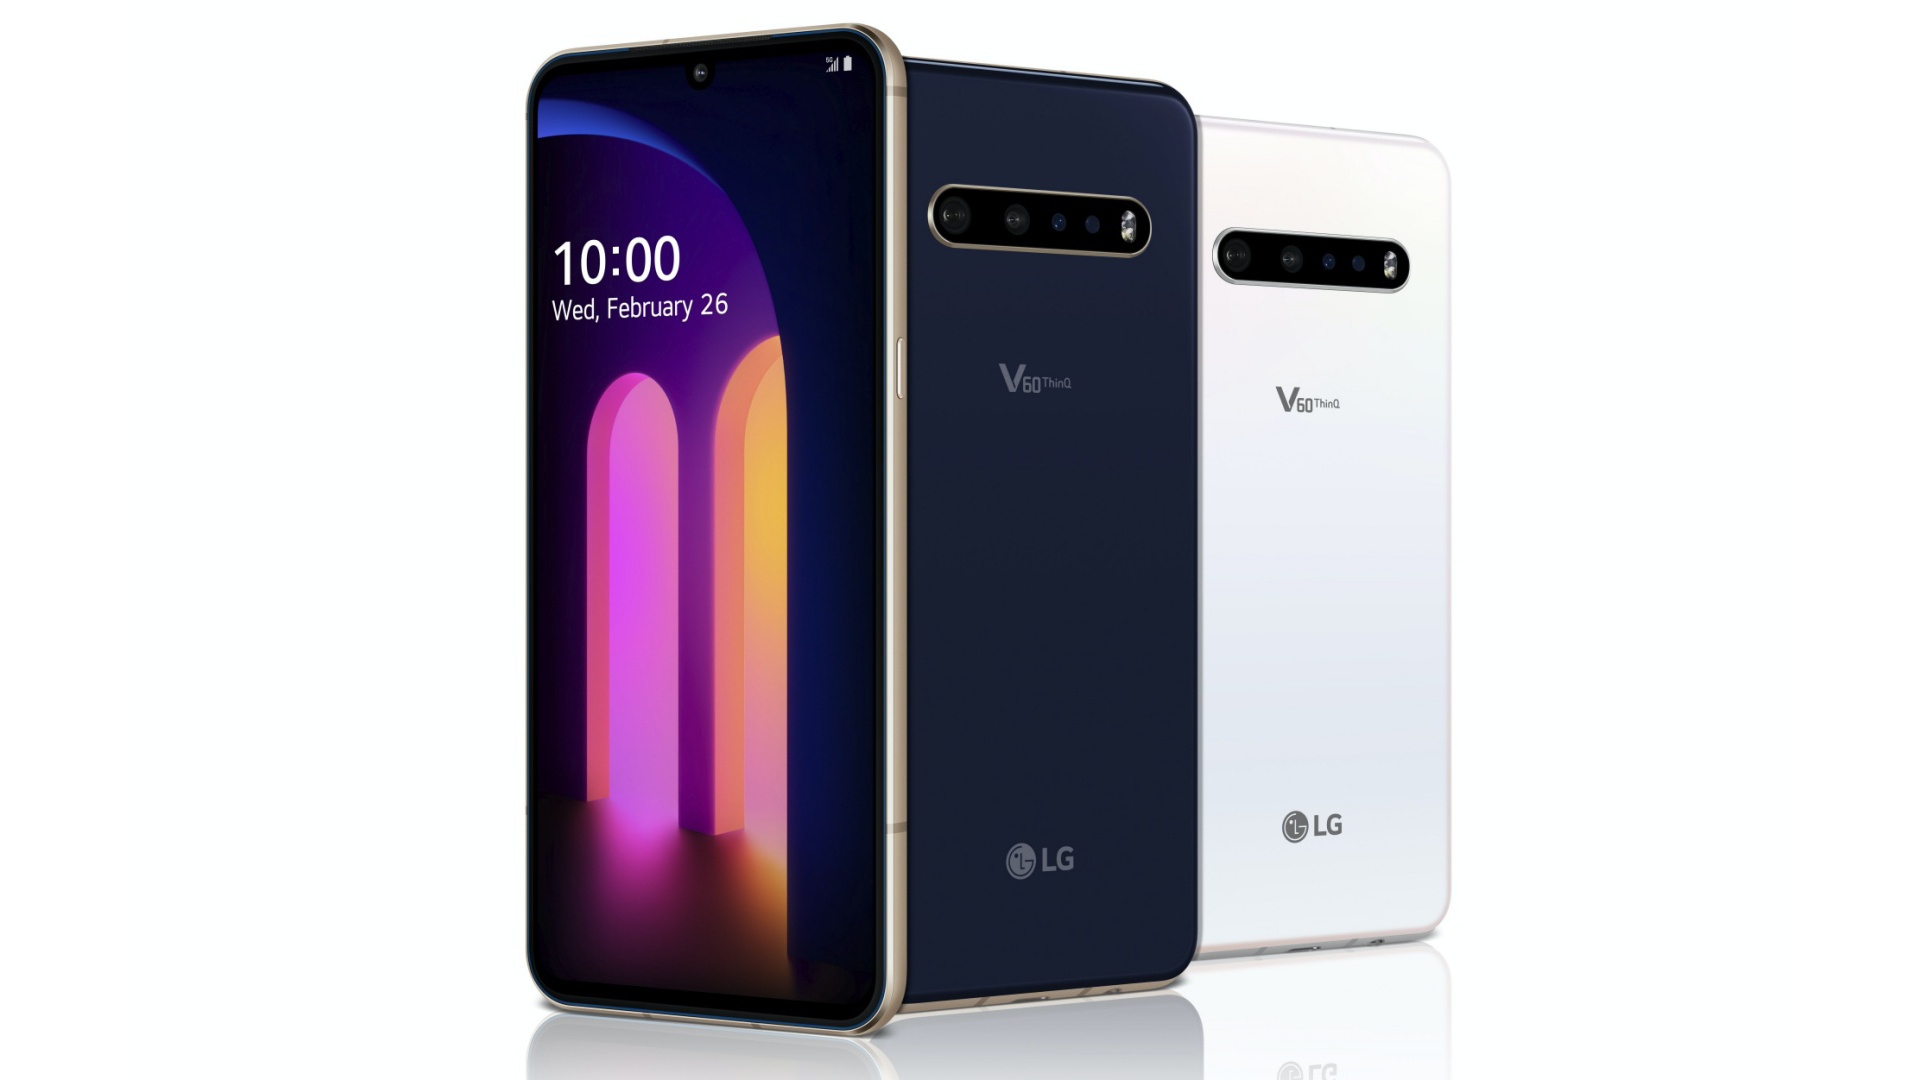 LG debuts V60 5G phone alongside another Dual Screen - htxt.africa